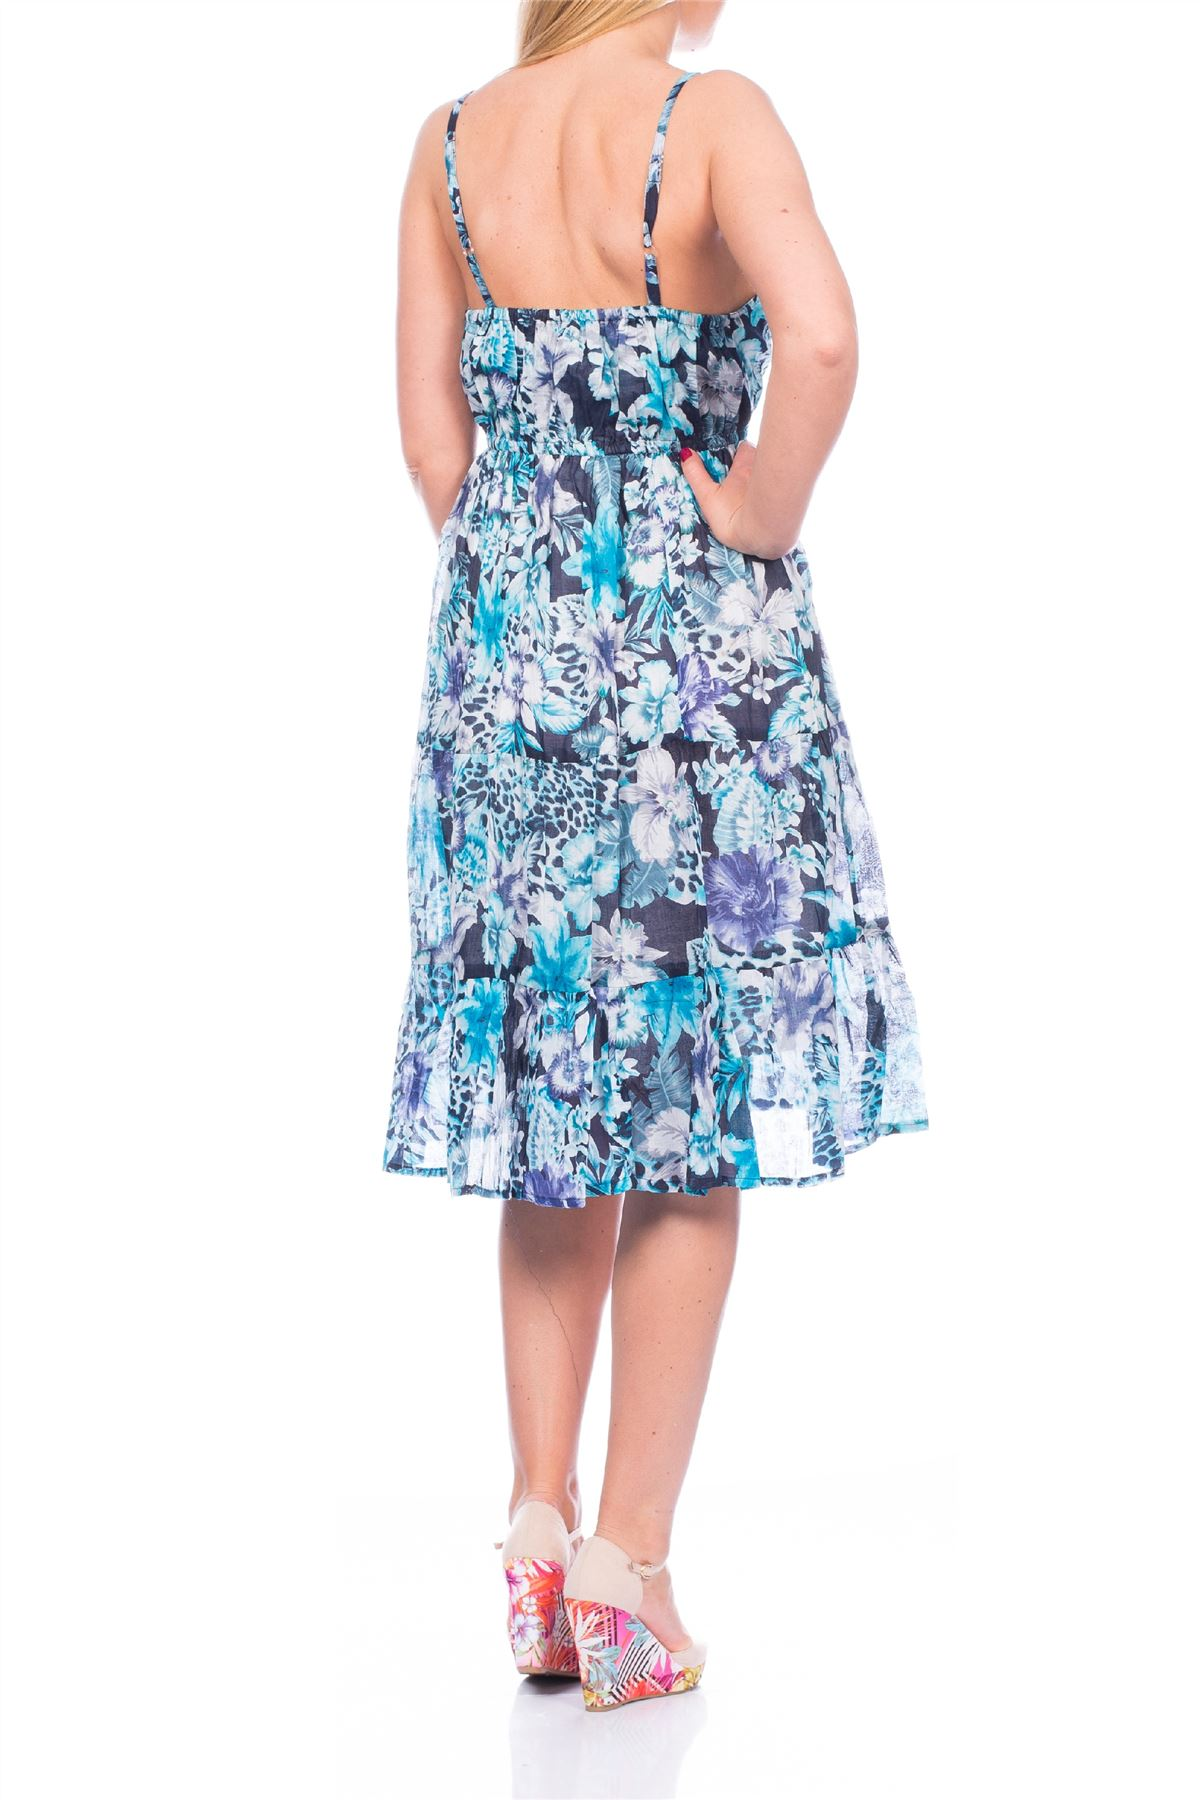 Size 22 Dresses. Showing 8 of 8 results that match your query. Search Product Result. Product - Women Casual Plus Size V-Neck Long Sleeve Dress Sexy Beautiful Party Women Clothes PESTE. Product Image. Product Title. Women Casual Plus Size V-Neck Long Sleeve Dress Sexy Beautiful Party Women Clothes PESTE.